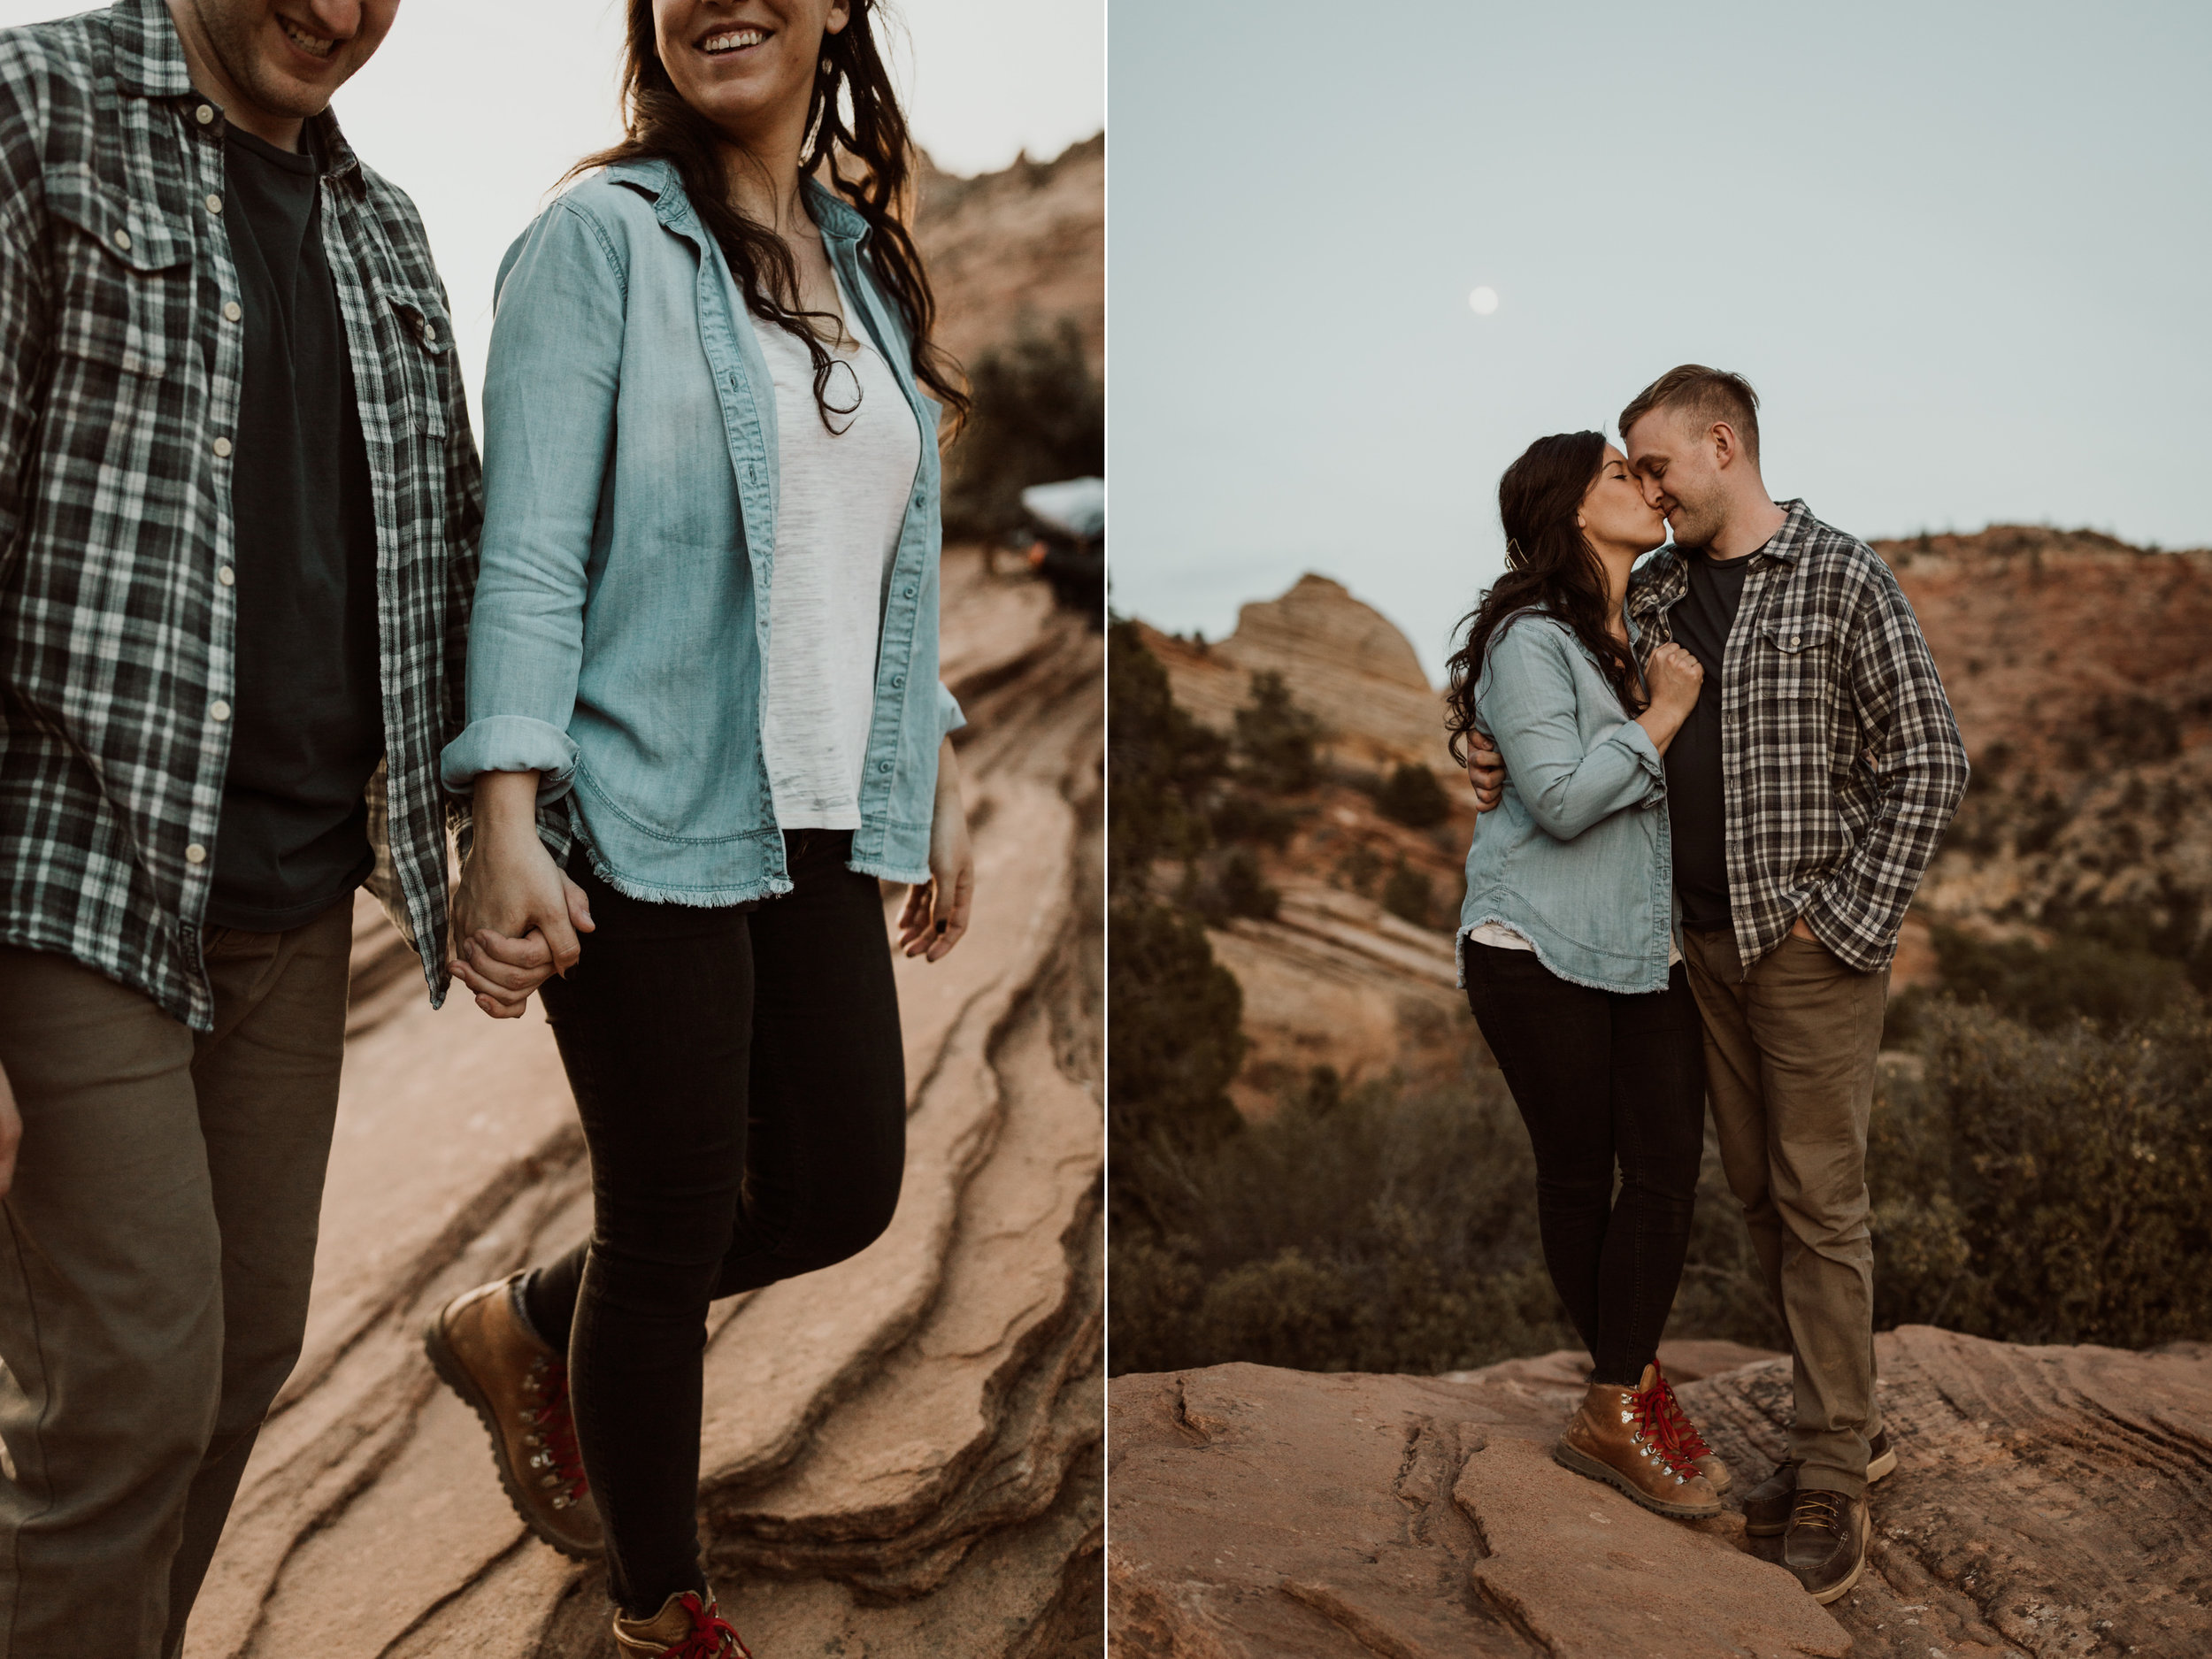 zion-national-park-engagements-62.jpg